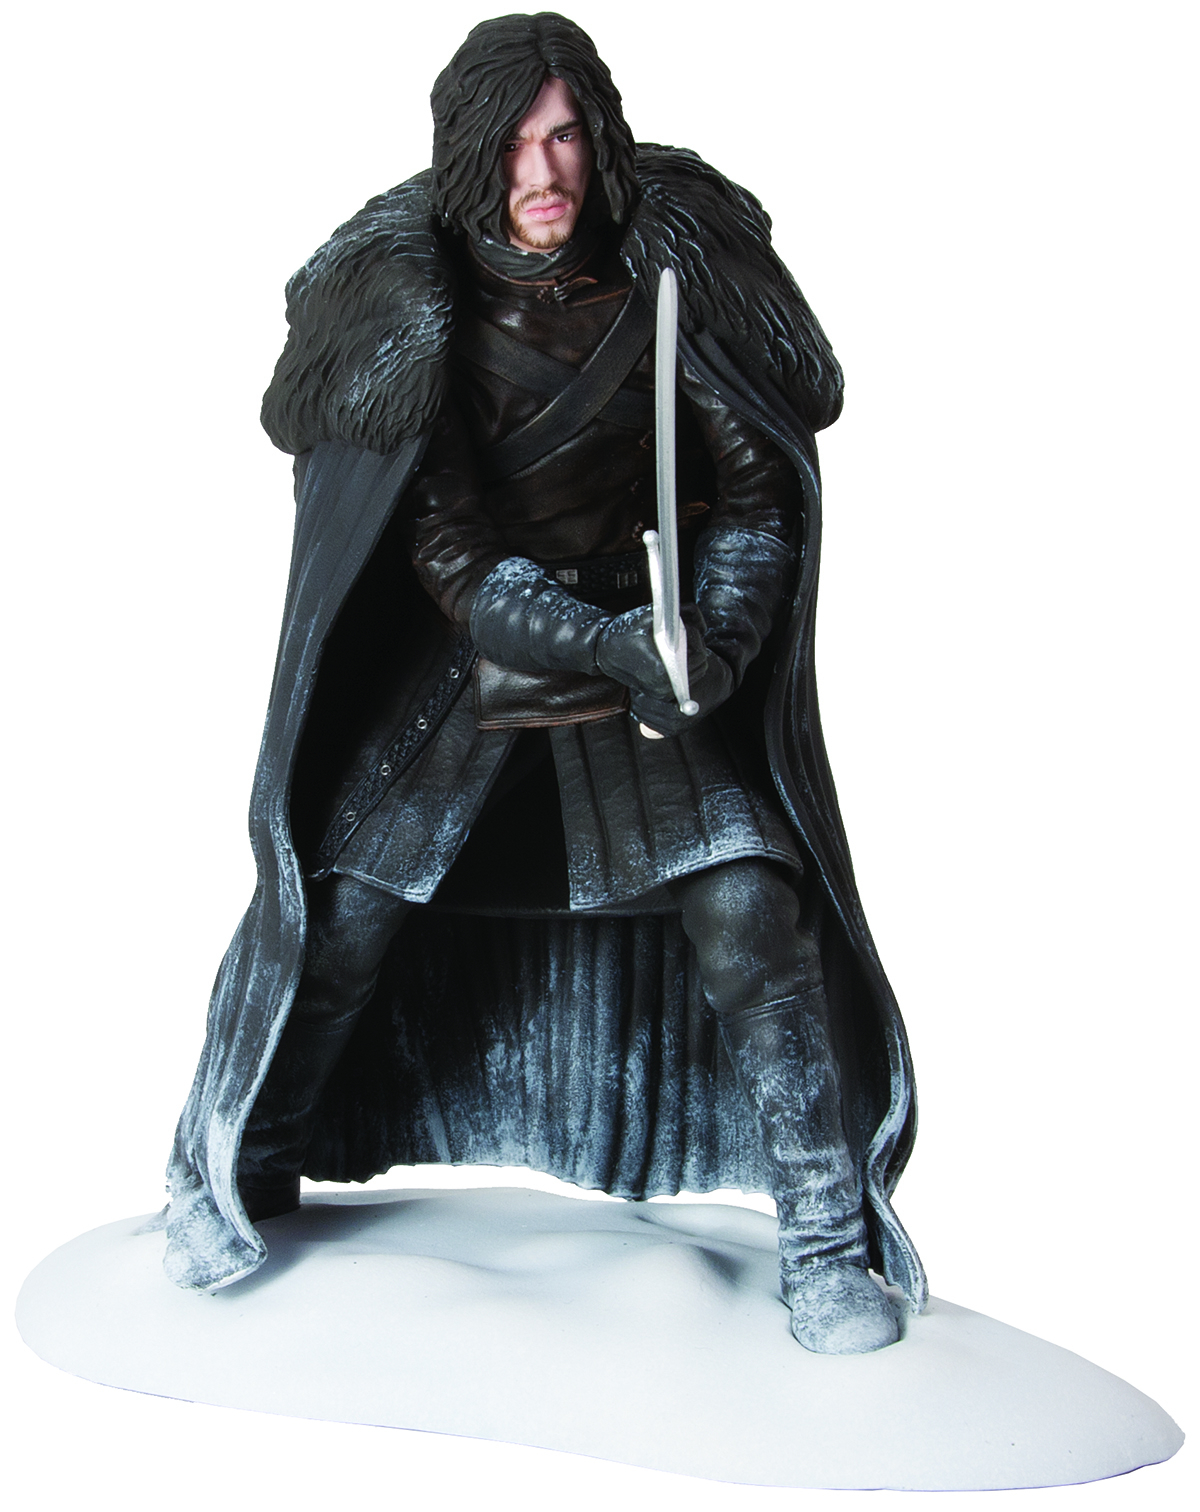 GAME OF THRONES FIGURE JON SNOW